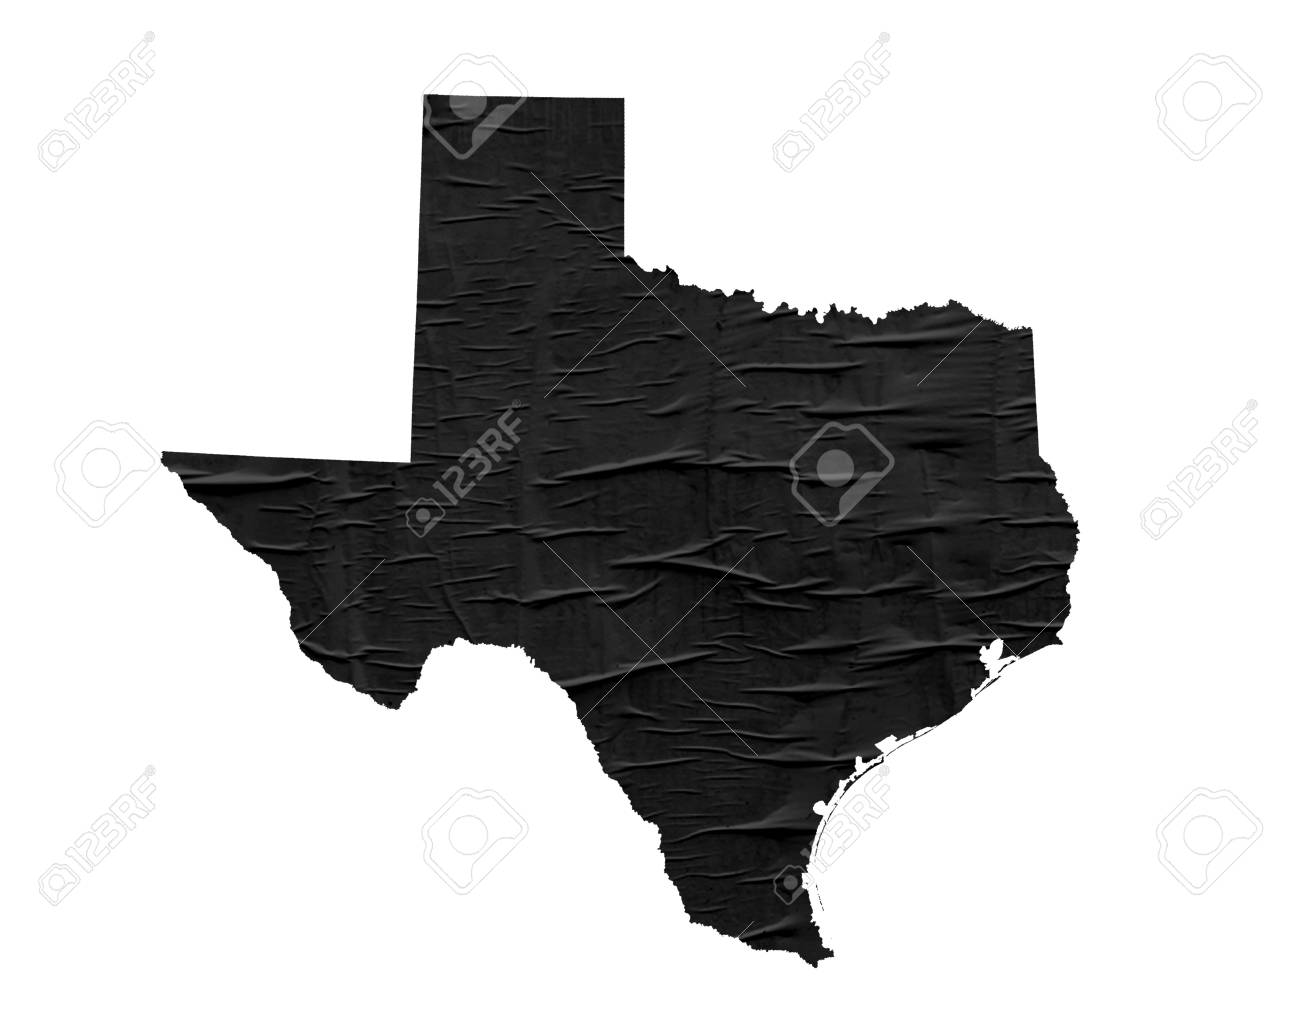 US State Texas Map On Old Paper Design Stock Photo, Picture And ...